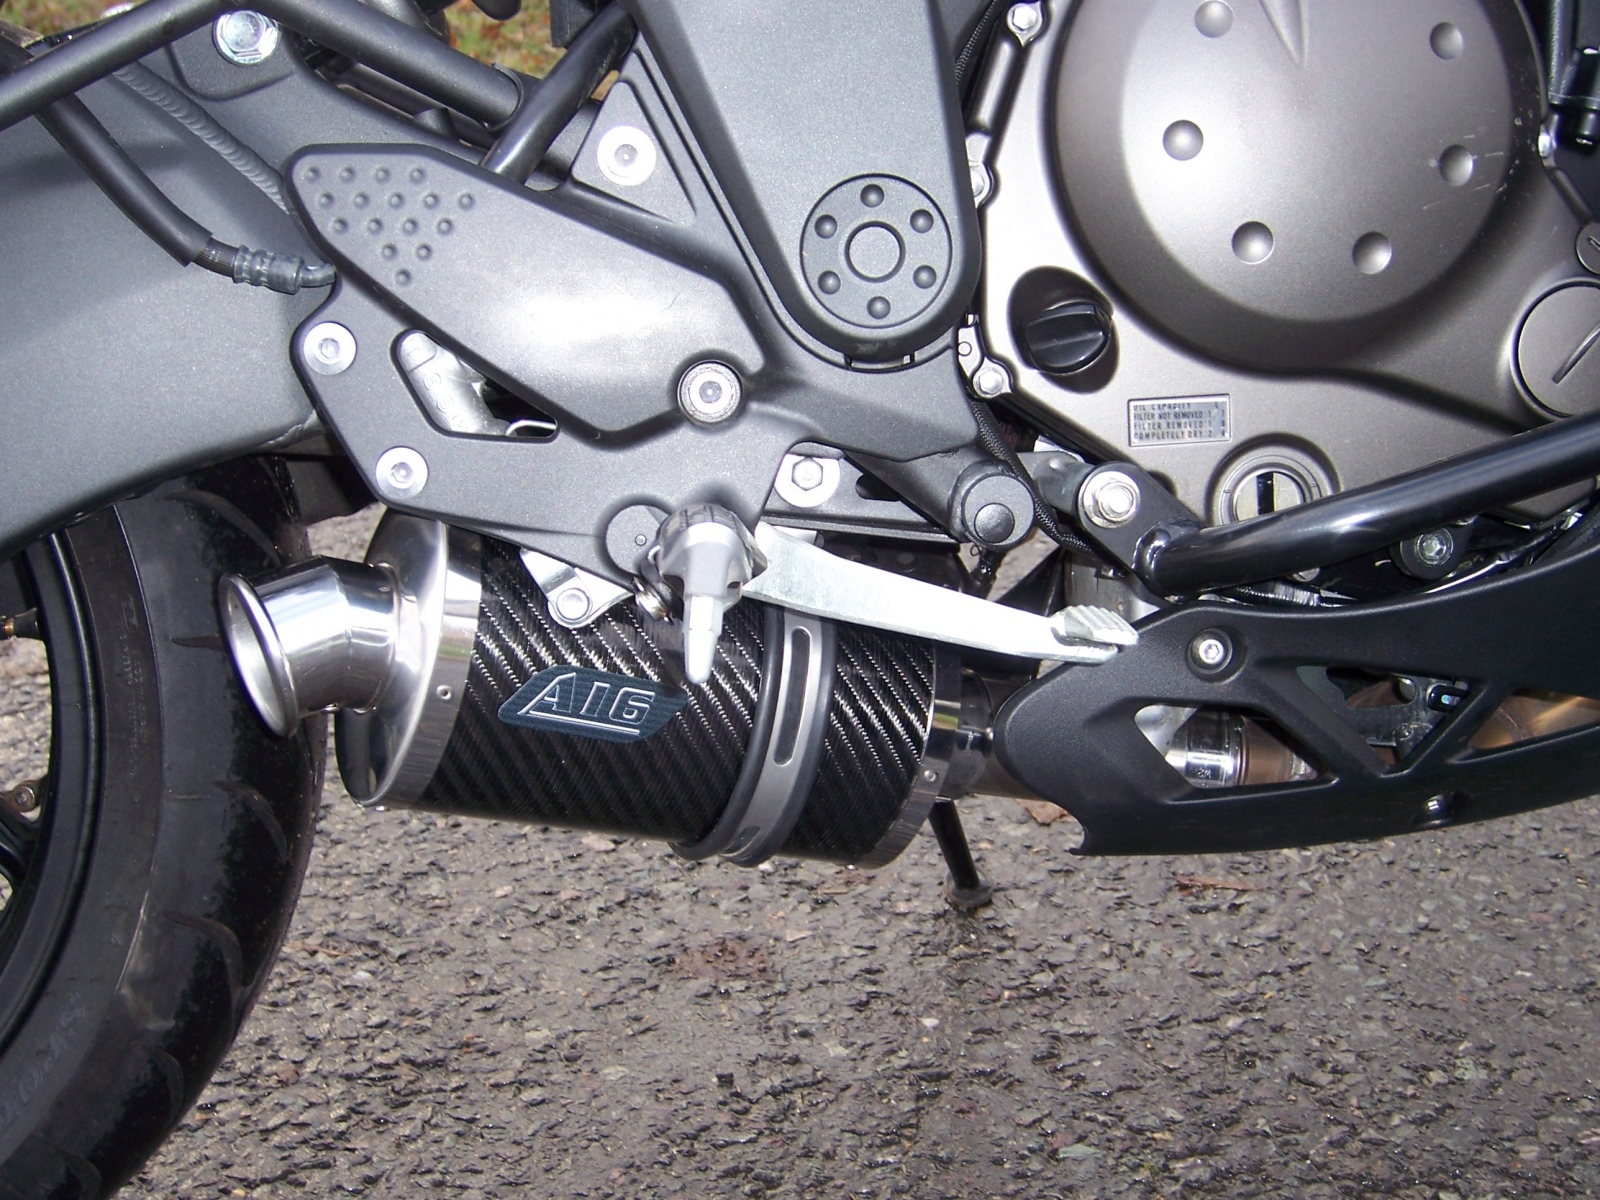 """Kawasaki ER6 650 Versy S N 2006-2008<p>A16 Stubby Carbon Exhaust with Polished Traditional Spout</p><br><a href=""""https://a16roadnracesupplies.co.uk/product/a16-kawasaki-exhausts/"""">Click here to Spec your A16 Kawasaki Exhaust now!</a>"""